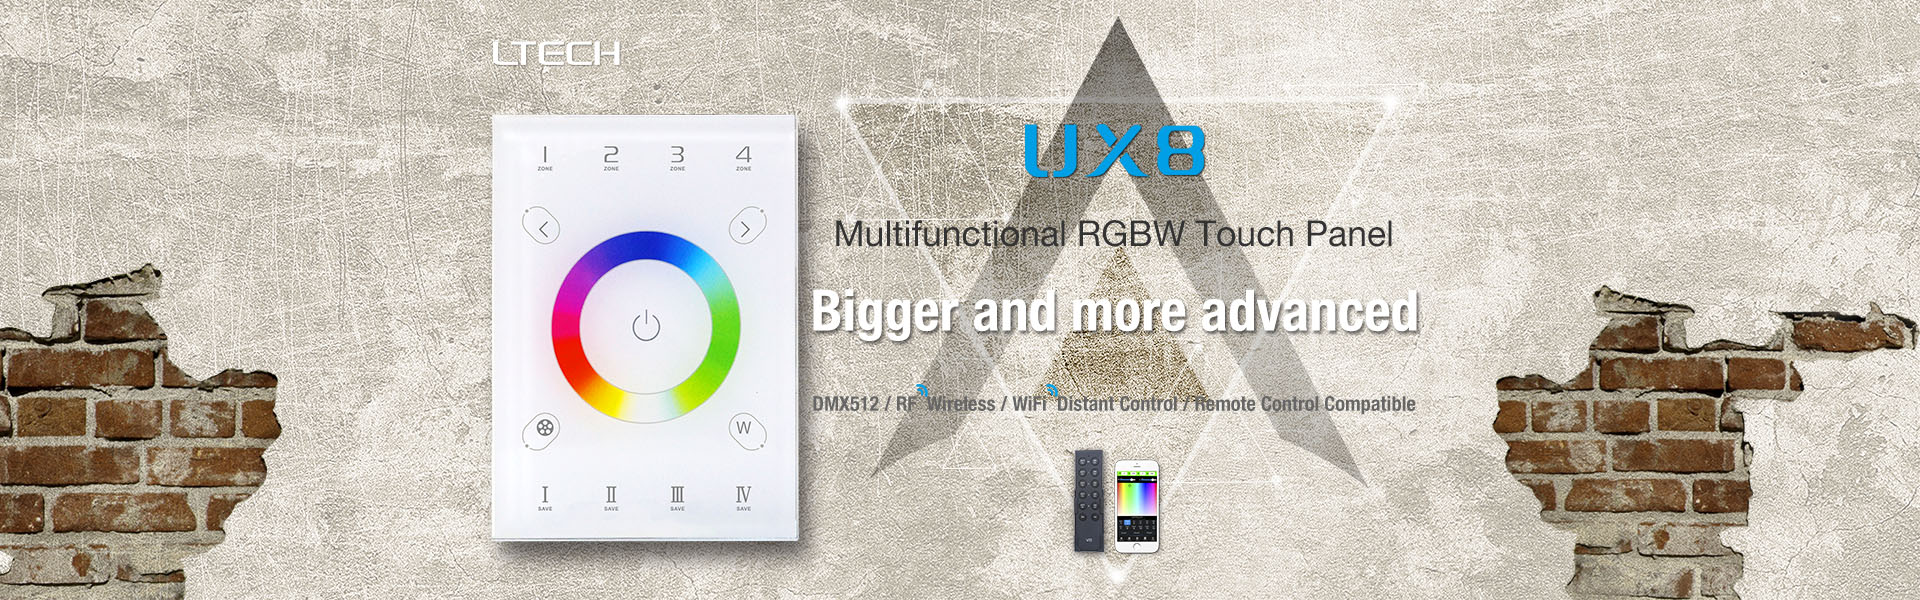 RGBW Touch Panel Controller UX8